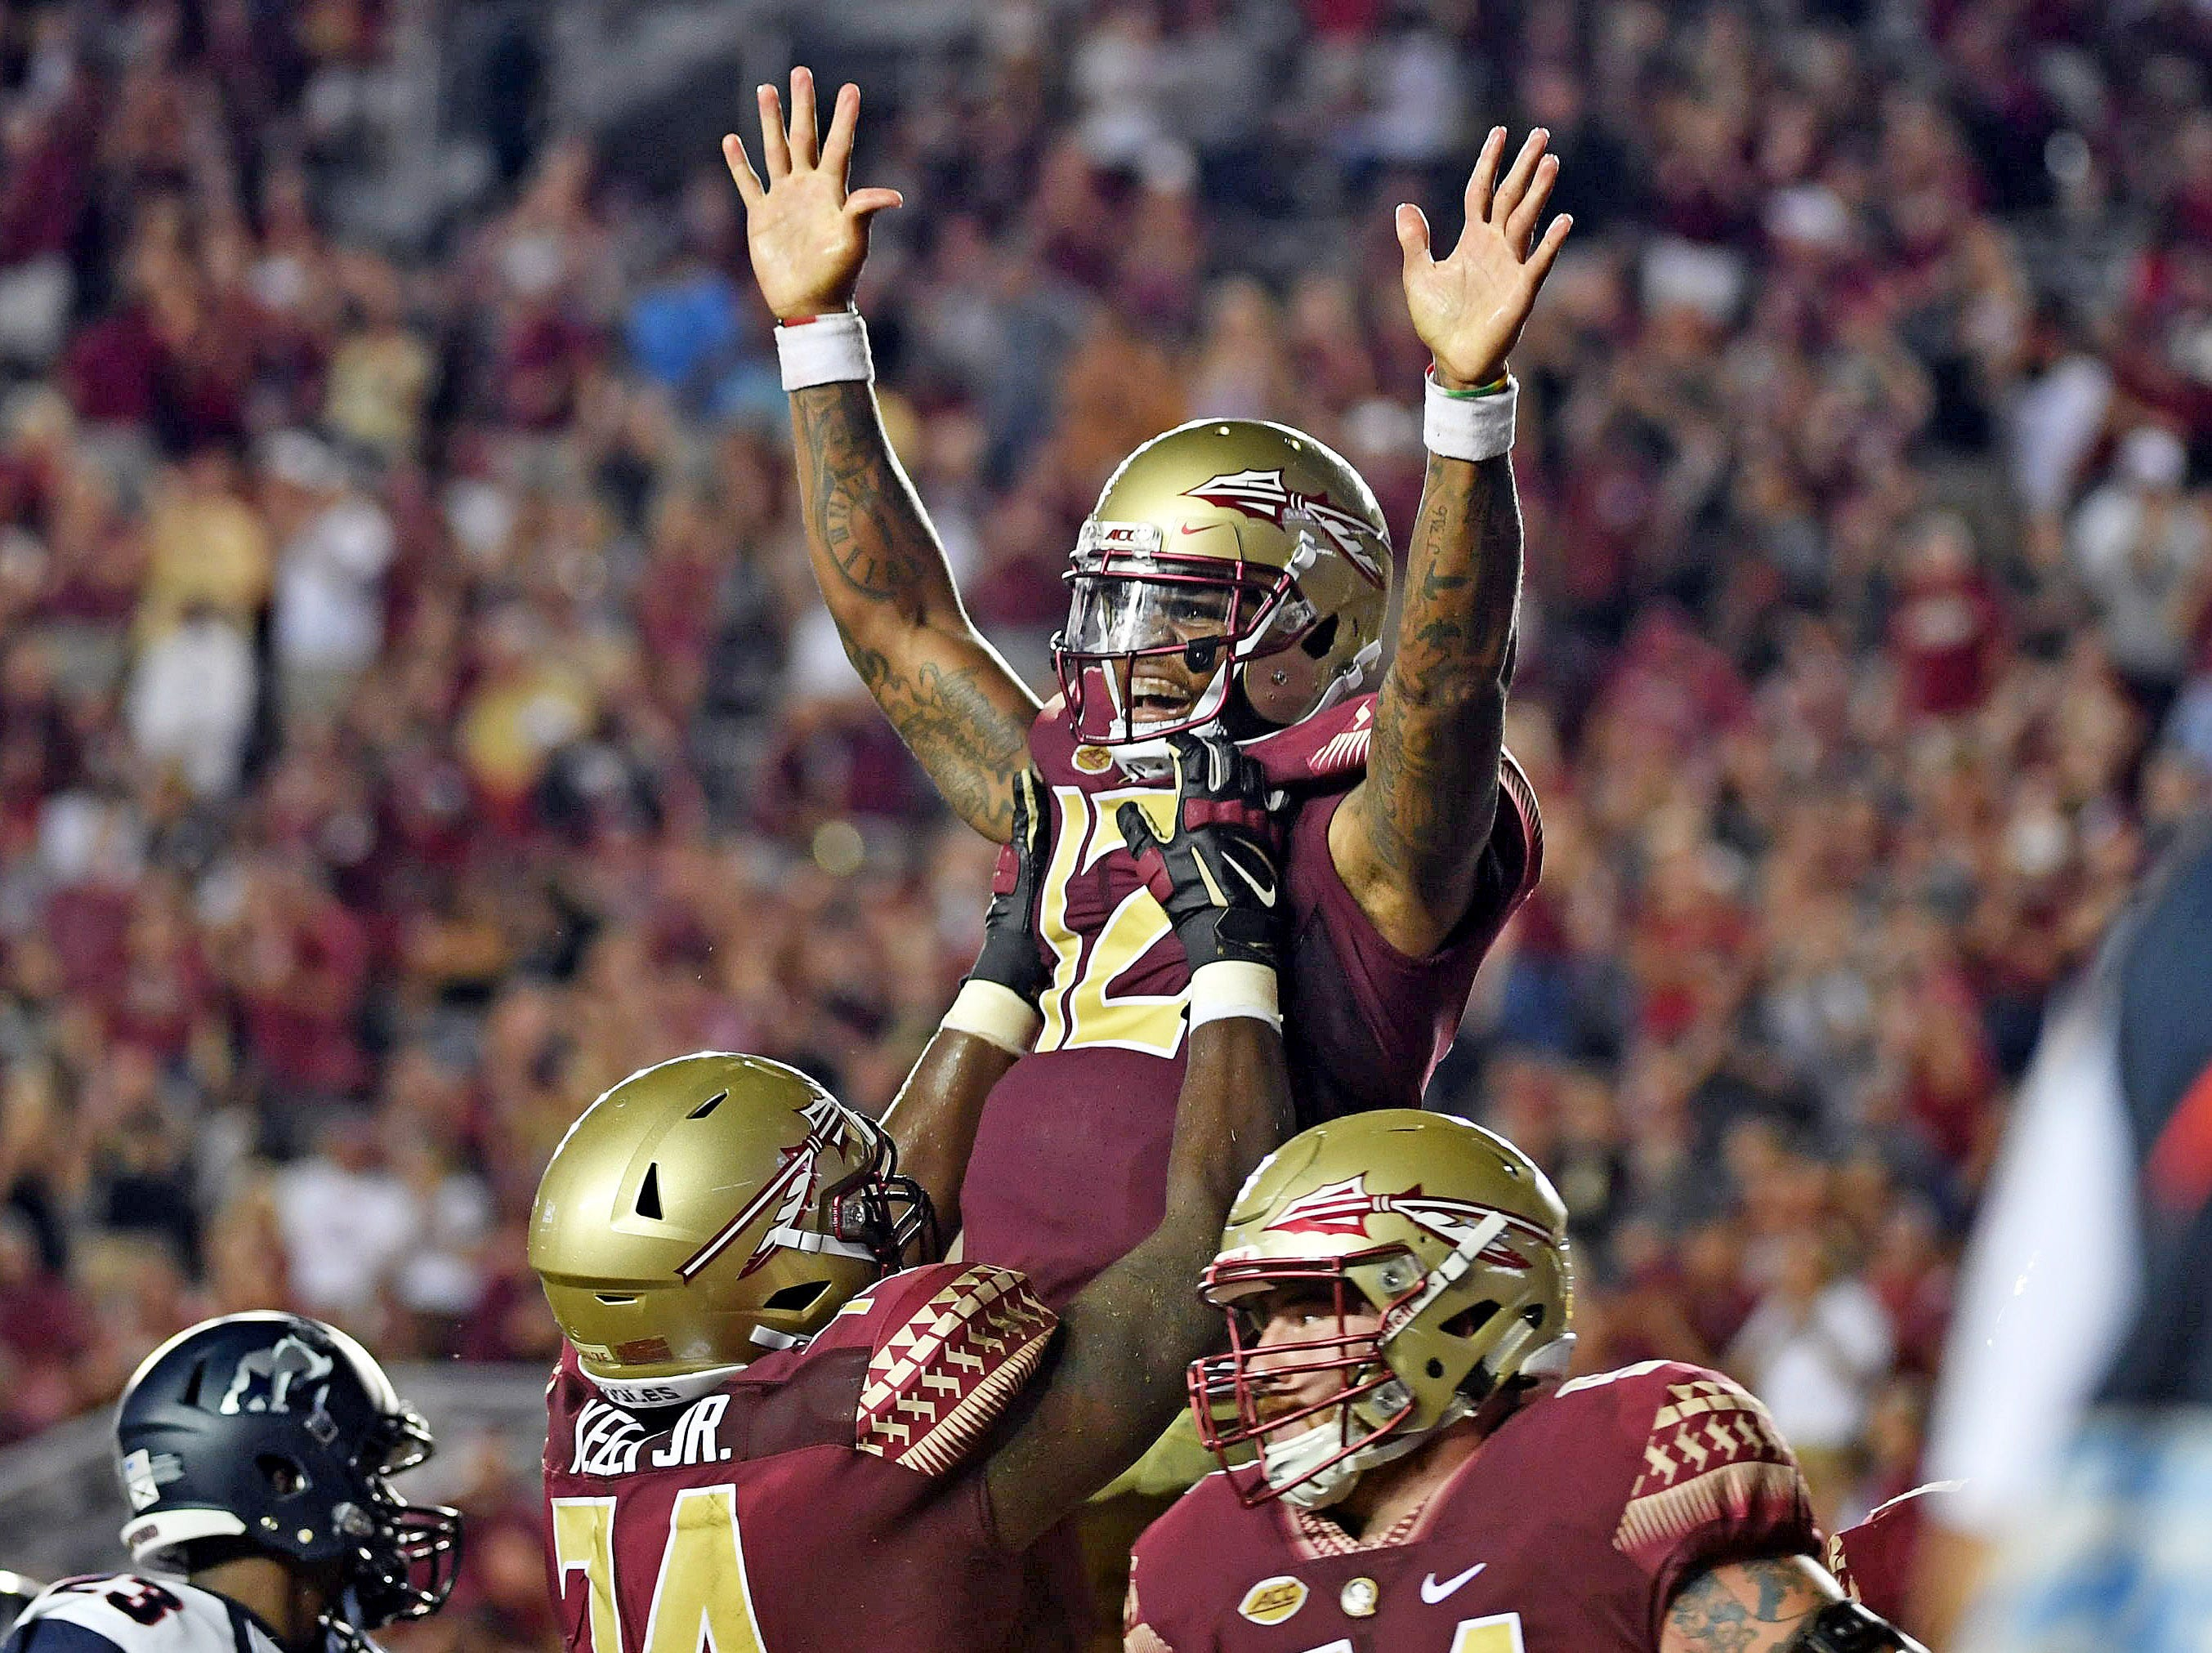 Florida State Seminoles quarterback Deondre Francois (12) celebrates after a touchdown with offensive lineman Derrick Kelly II (74) in the first half against the Samford Bulldogs at Doak Campbell Stadium.